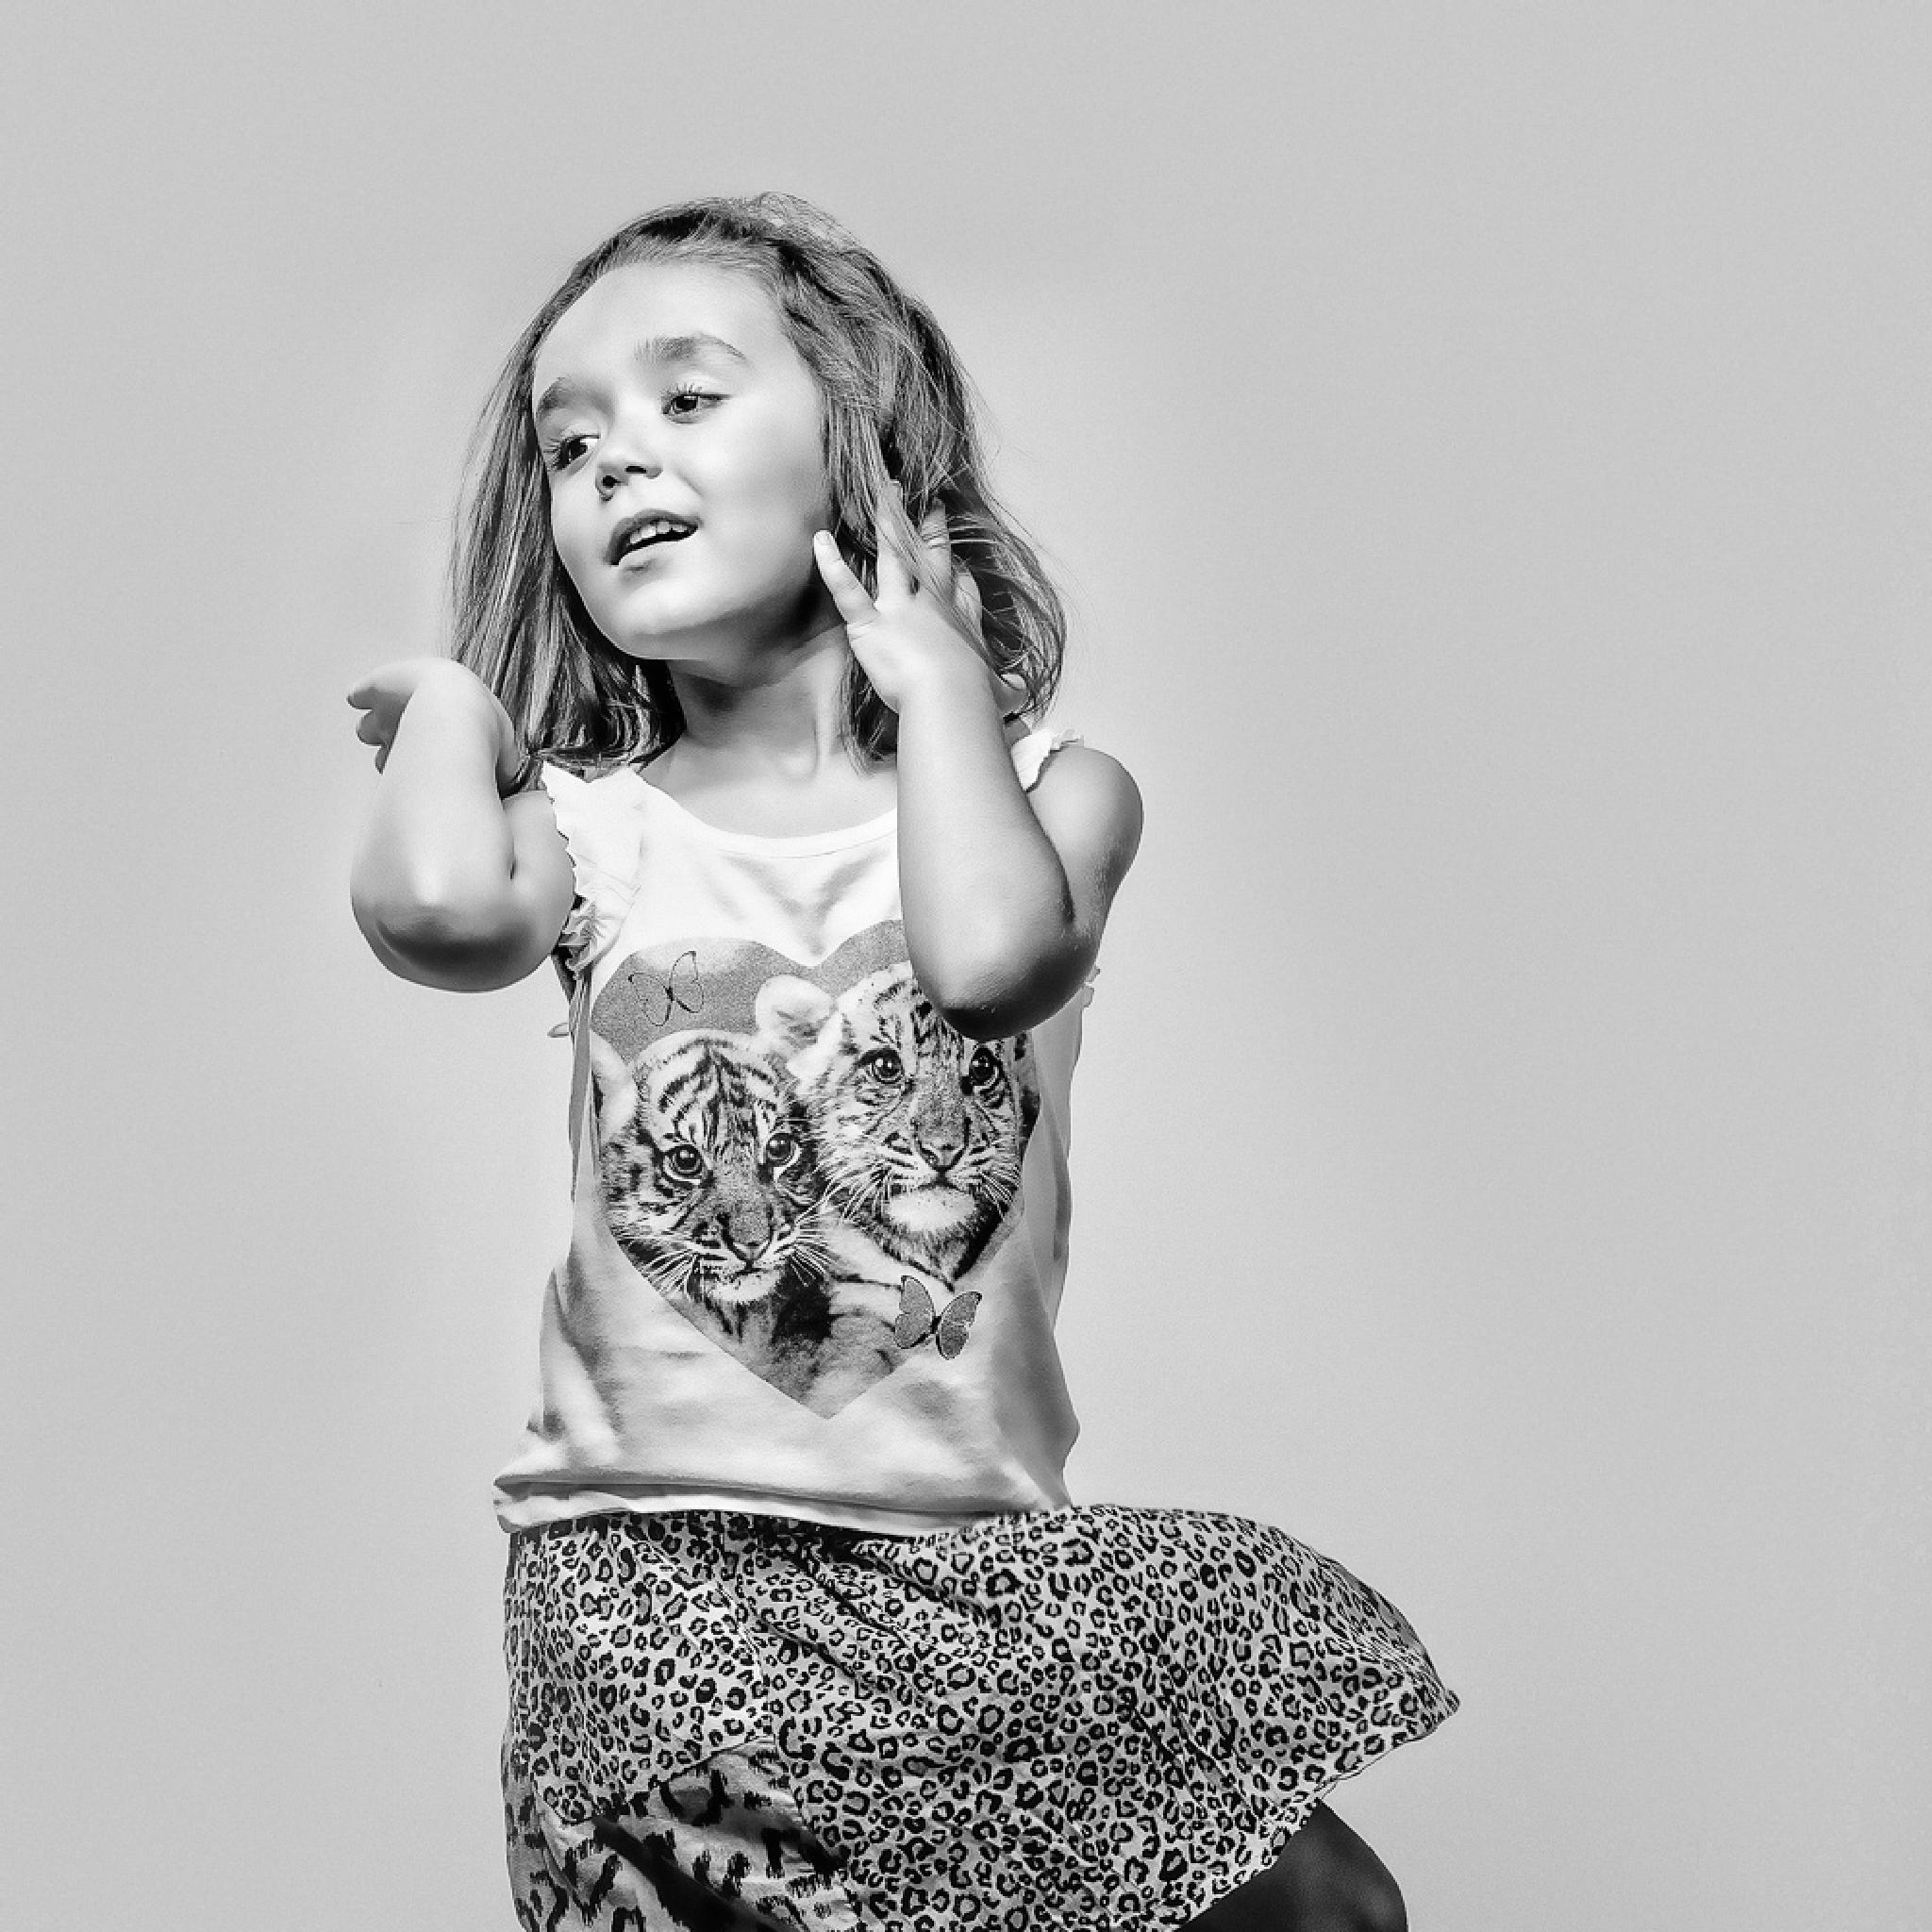 Hands, air, Action... by Javier M Serrano